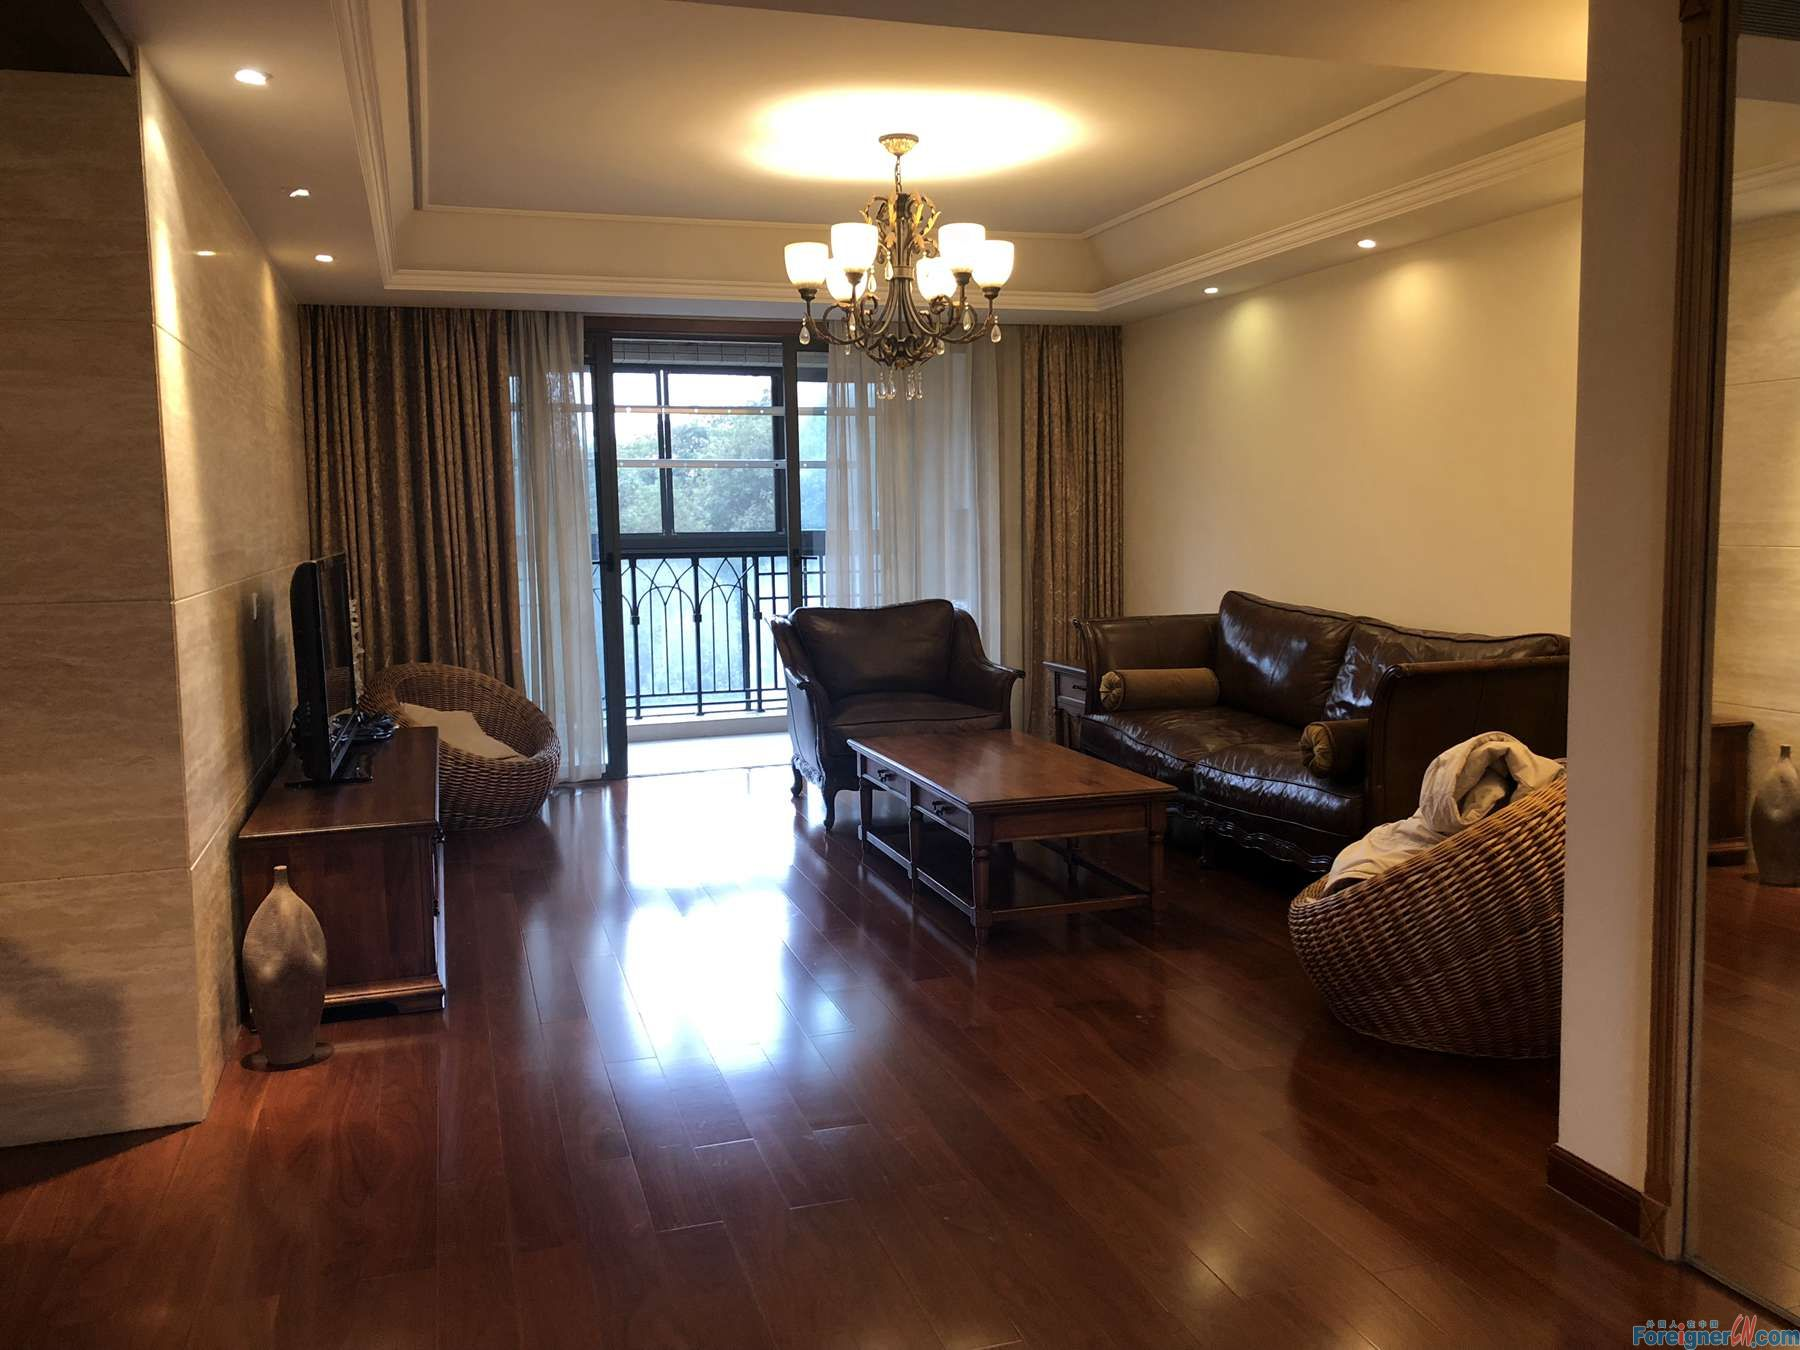 Property/Residence Name: Lake-side Palace (Shenhu Road) Dwelling Layout: 3 bedrooms ,2 living rooms ,2 bathrooms  Decoration Grade: fully furnished / spacious Building Orientation: East/South Floor:22 Lift? Yes Gross Area: 150 square meters Furniture: r